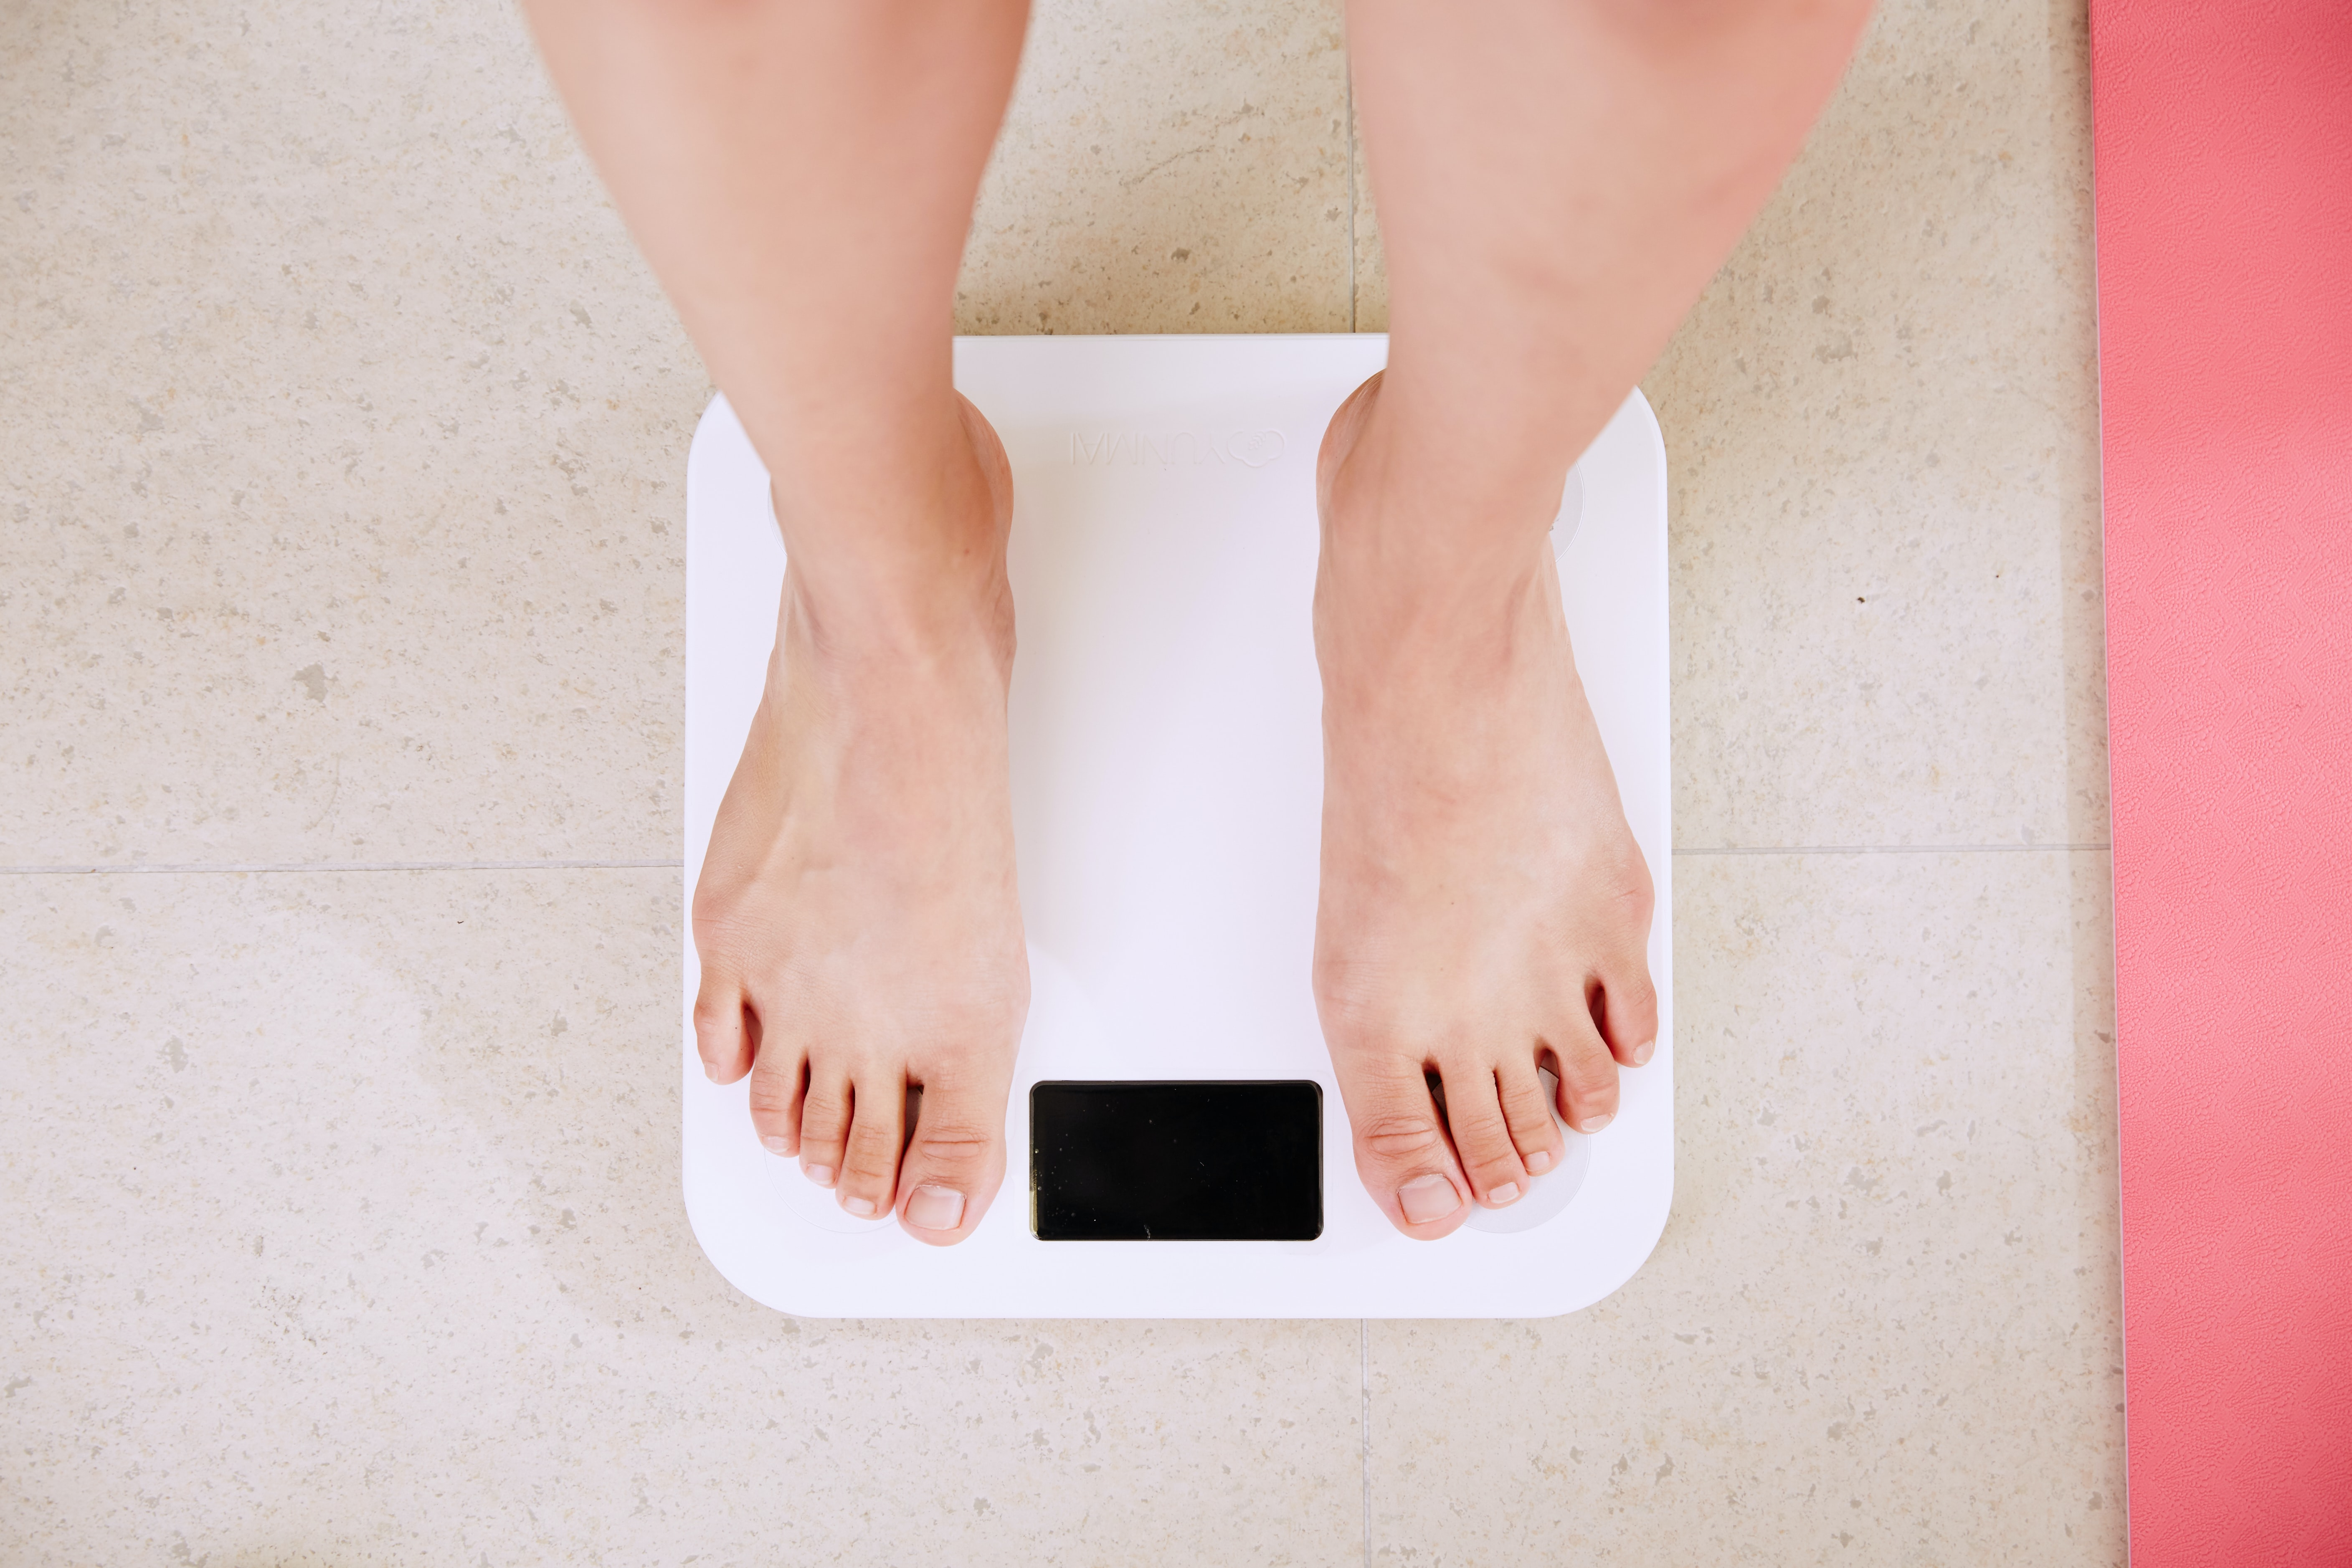 The Noom App Makes Big Claims About Helping You Lose Weight. Does It Work?